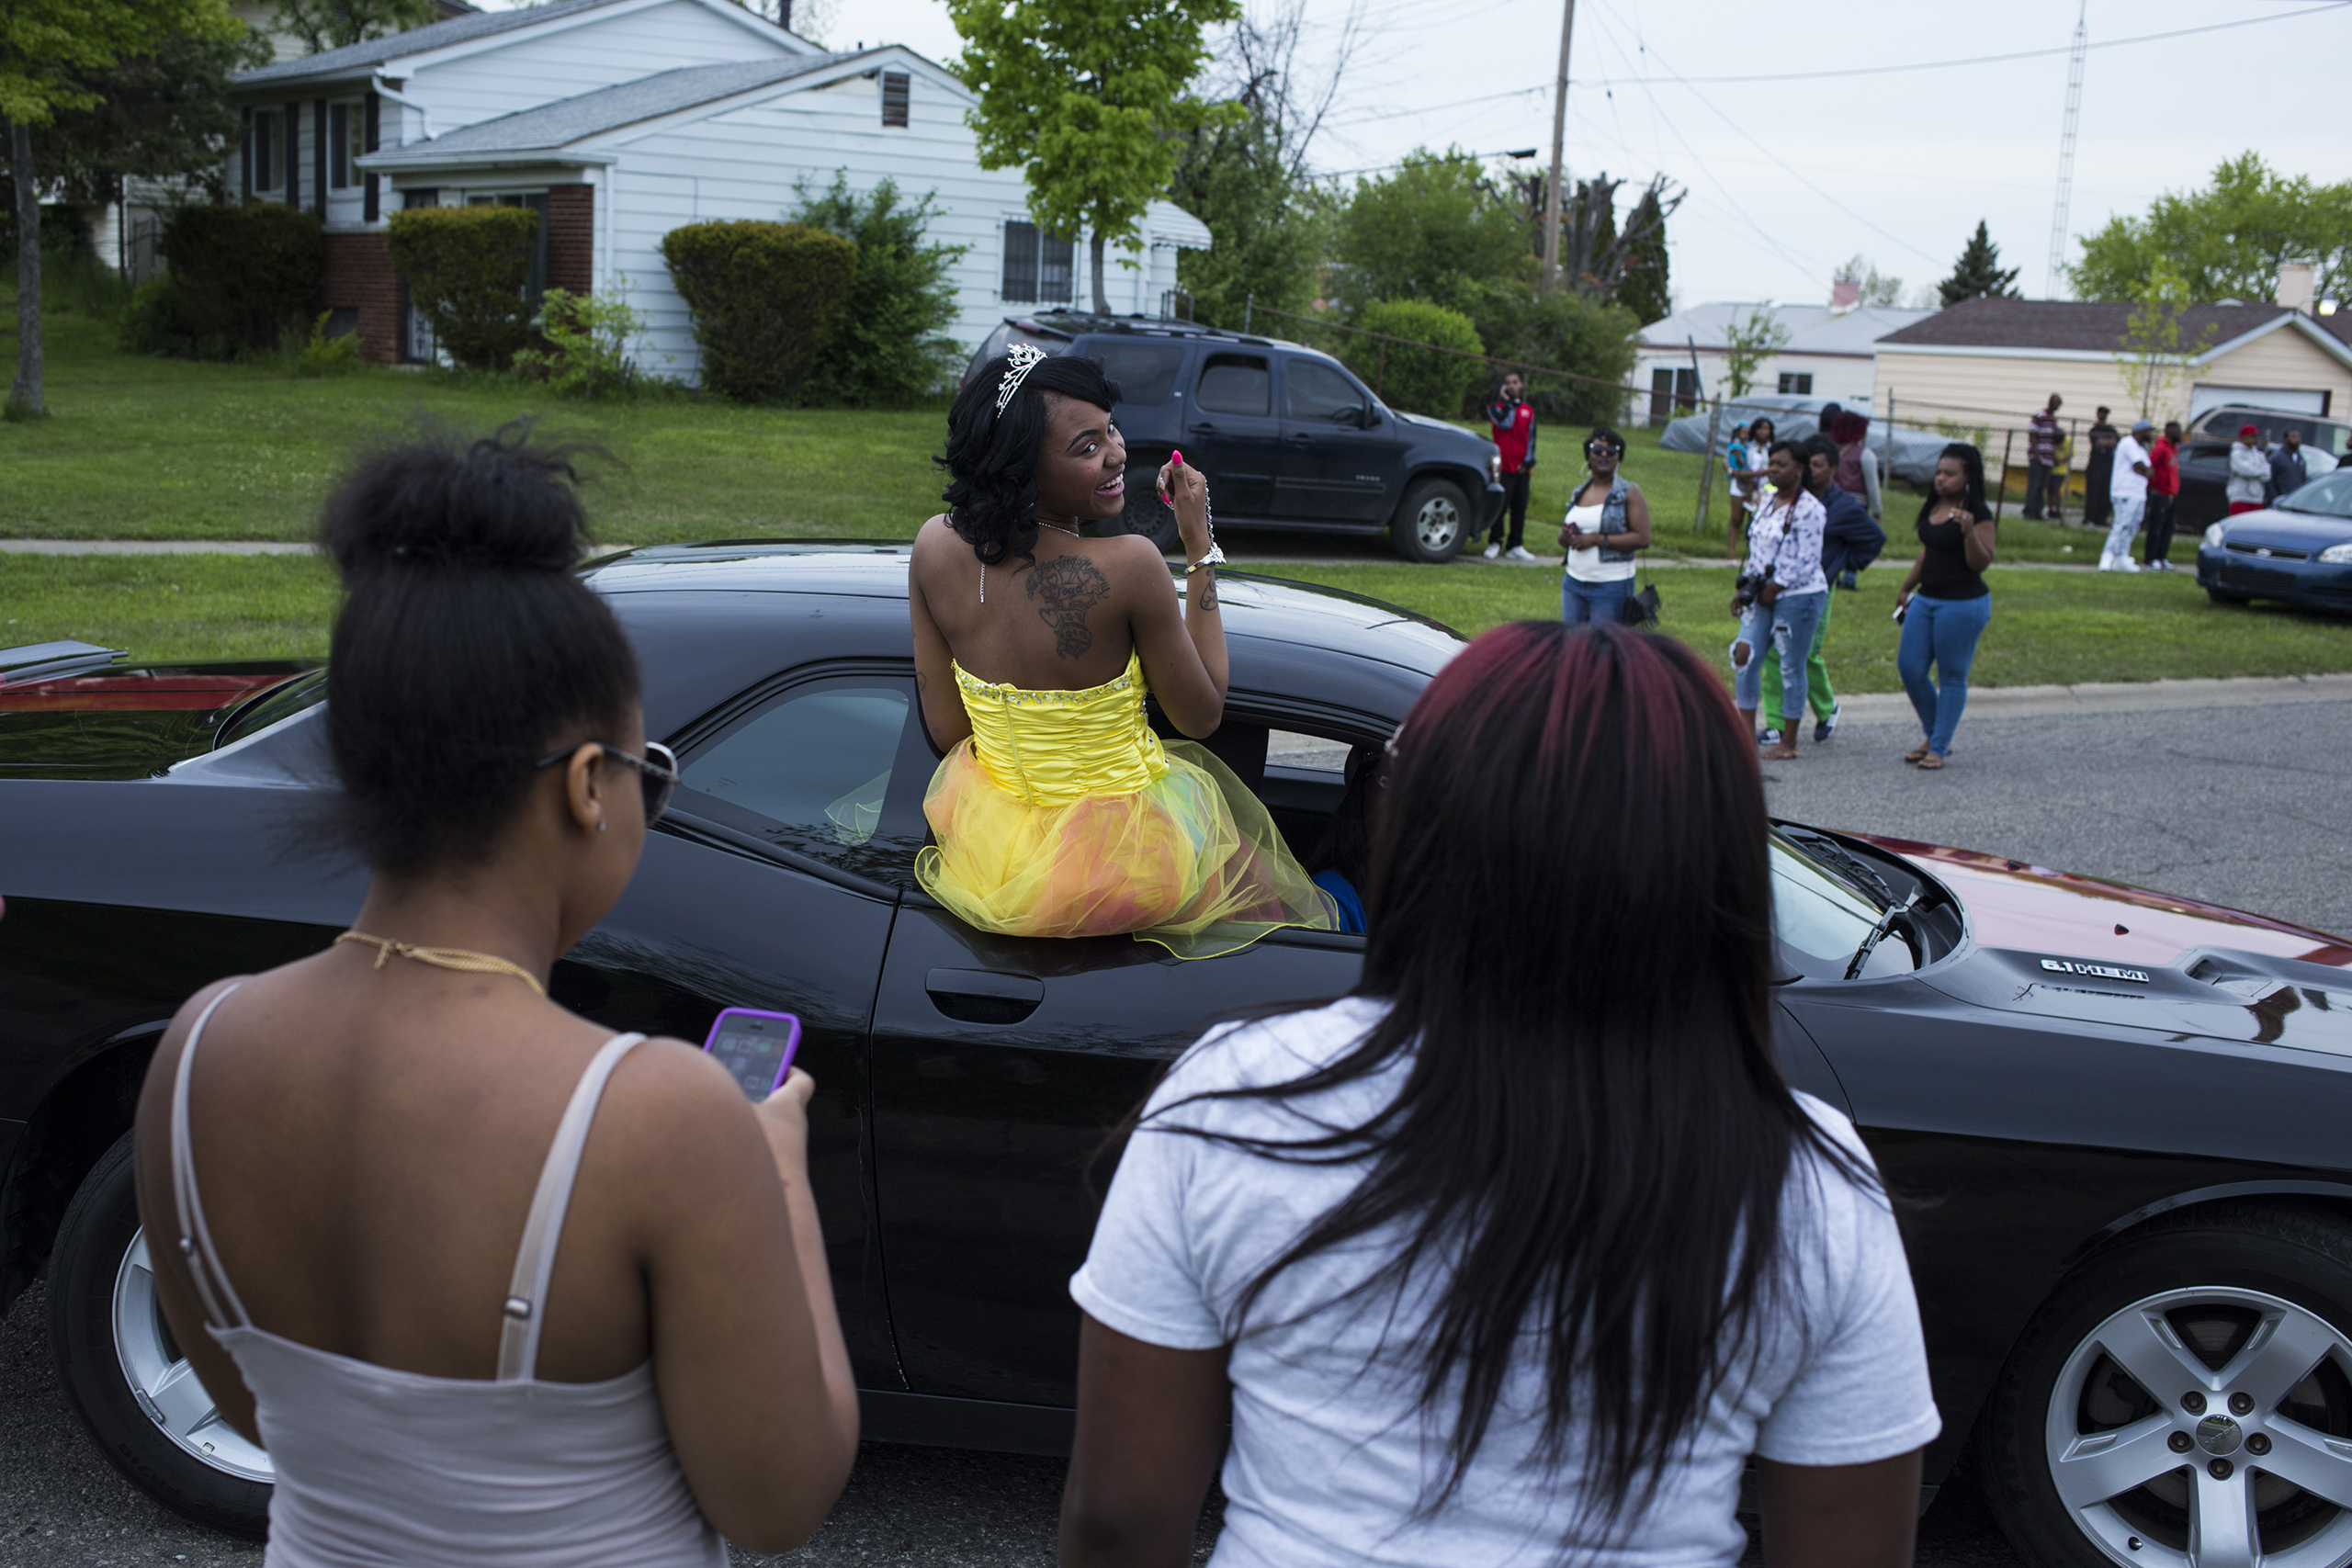 Beecher High School student Chatara Cornelius, 18, of Flint, Mich., dances from the window of a car as she makes her entry during a pre-prom red carpet-style event at Dailey Elementary School in Mount Morris, May 20, 2016.